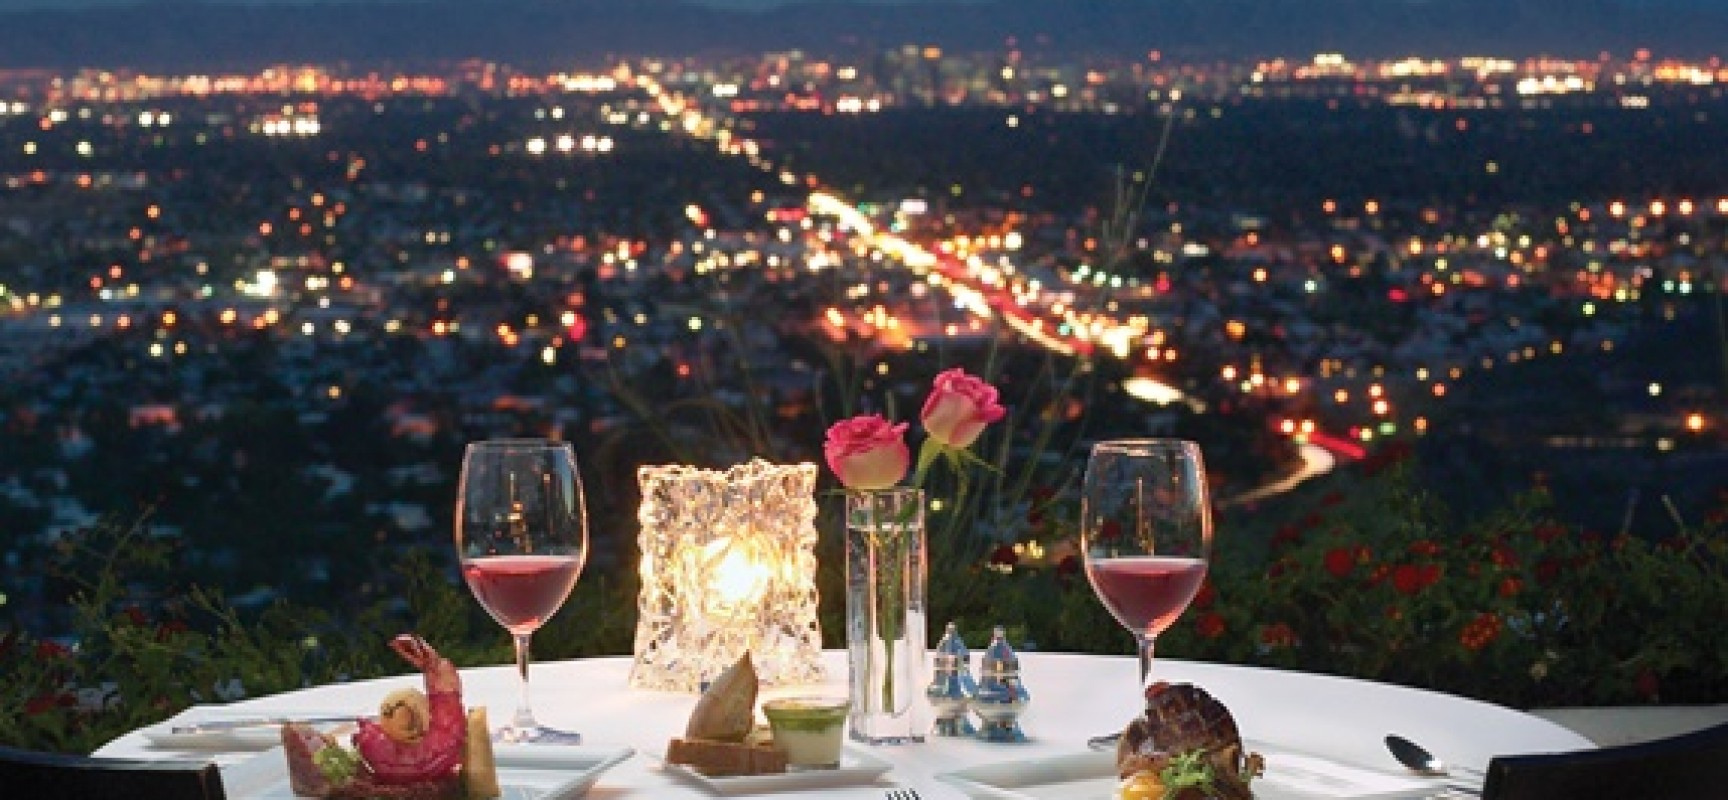 Top 10 most romantic Valentine's Day destinations restaurants for valentine's day The Most Romantic Restaurants for Valentine's Day cover10 restaurants for valentine's day The Most Romantic Restaurants for Valentine's Day cover10